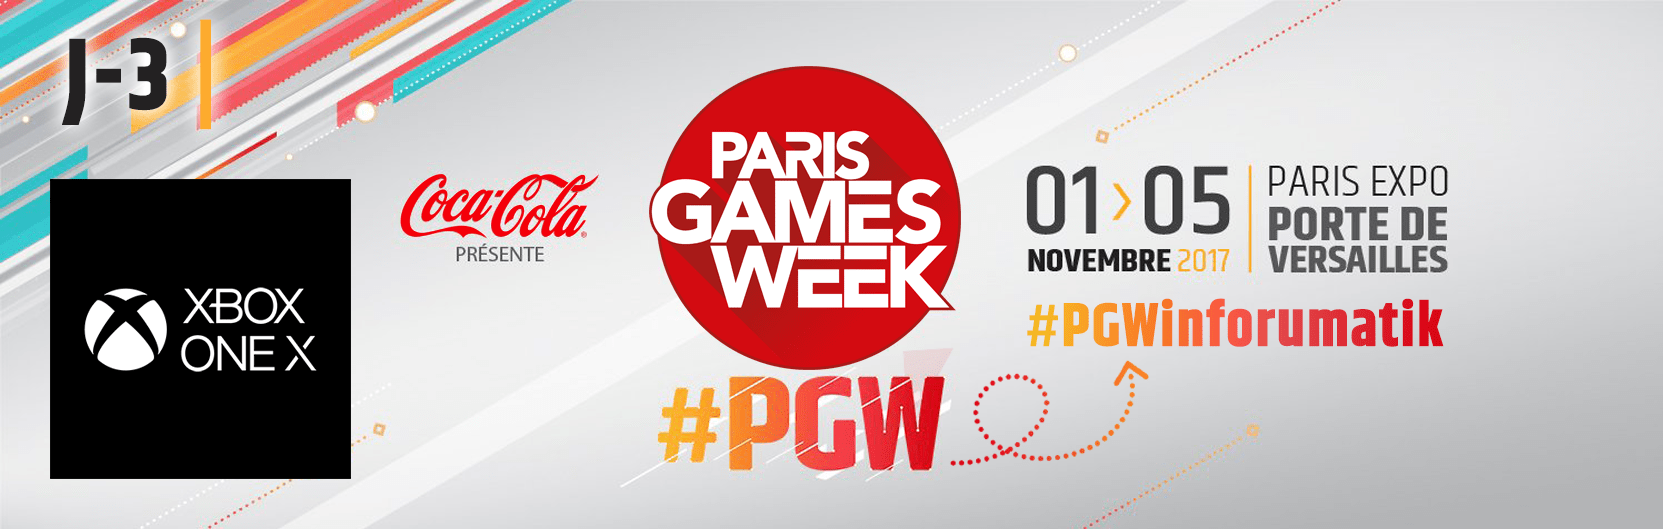 [J-3] Paris Games Week 2017 : Xbox